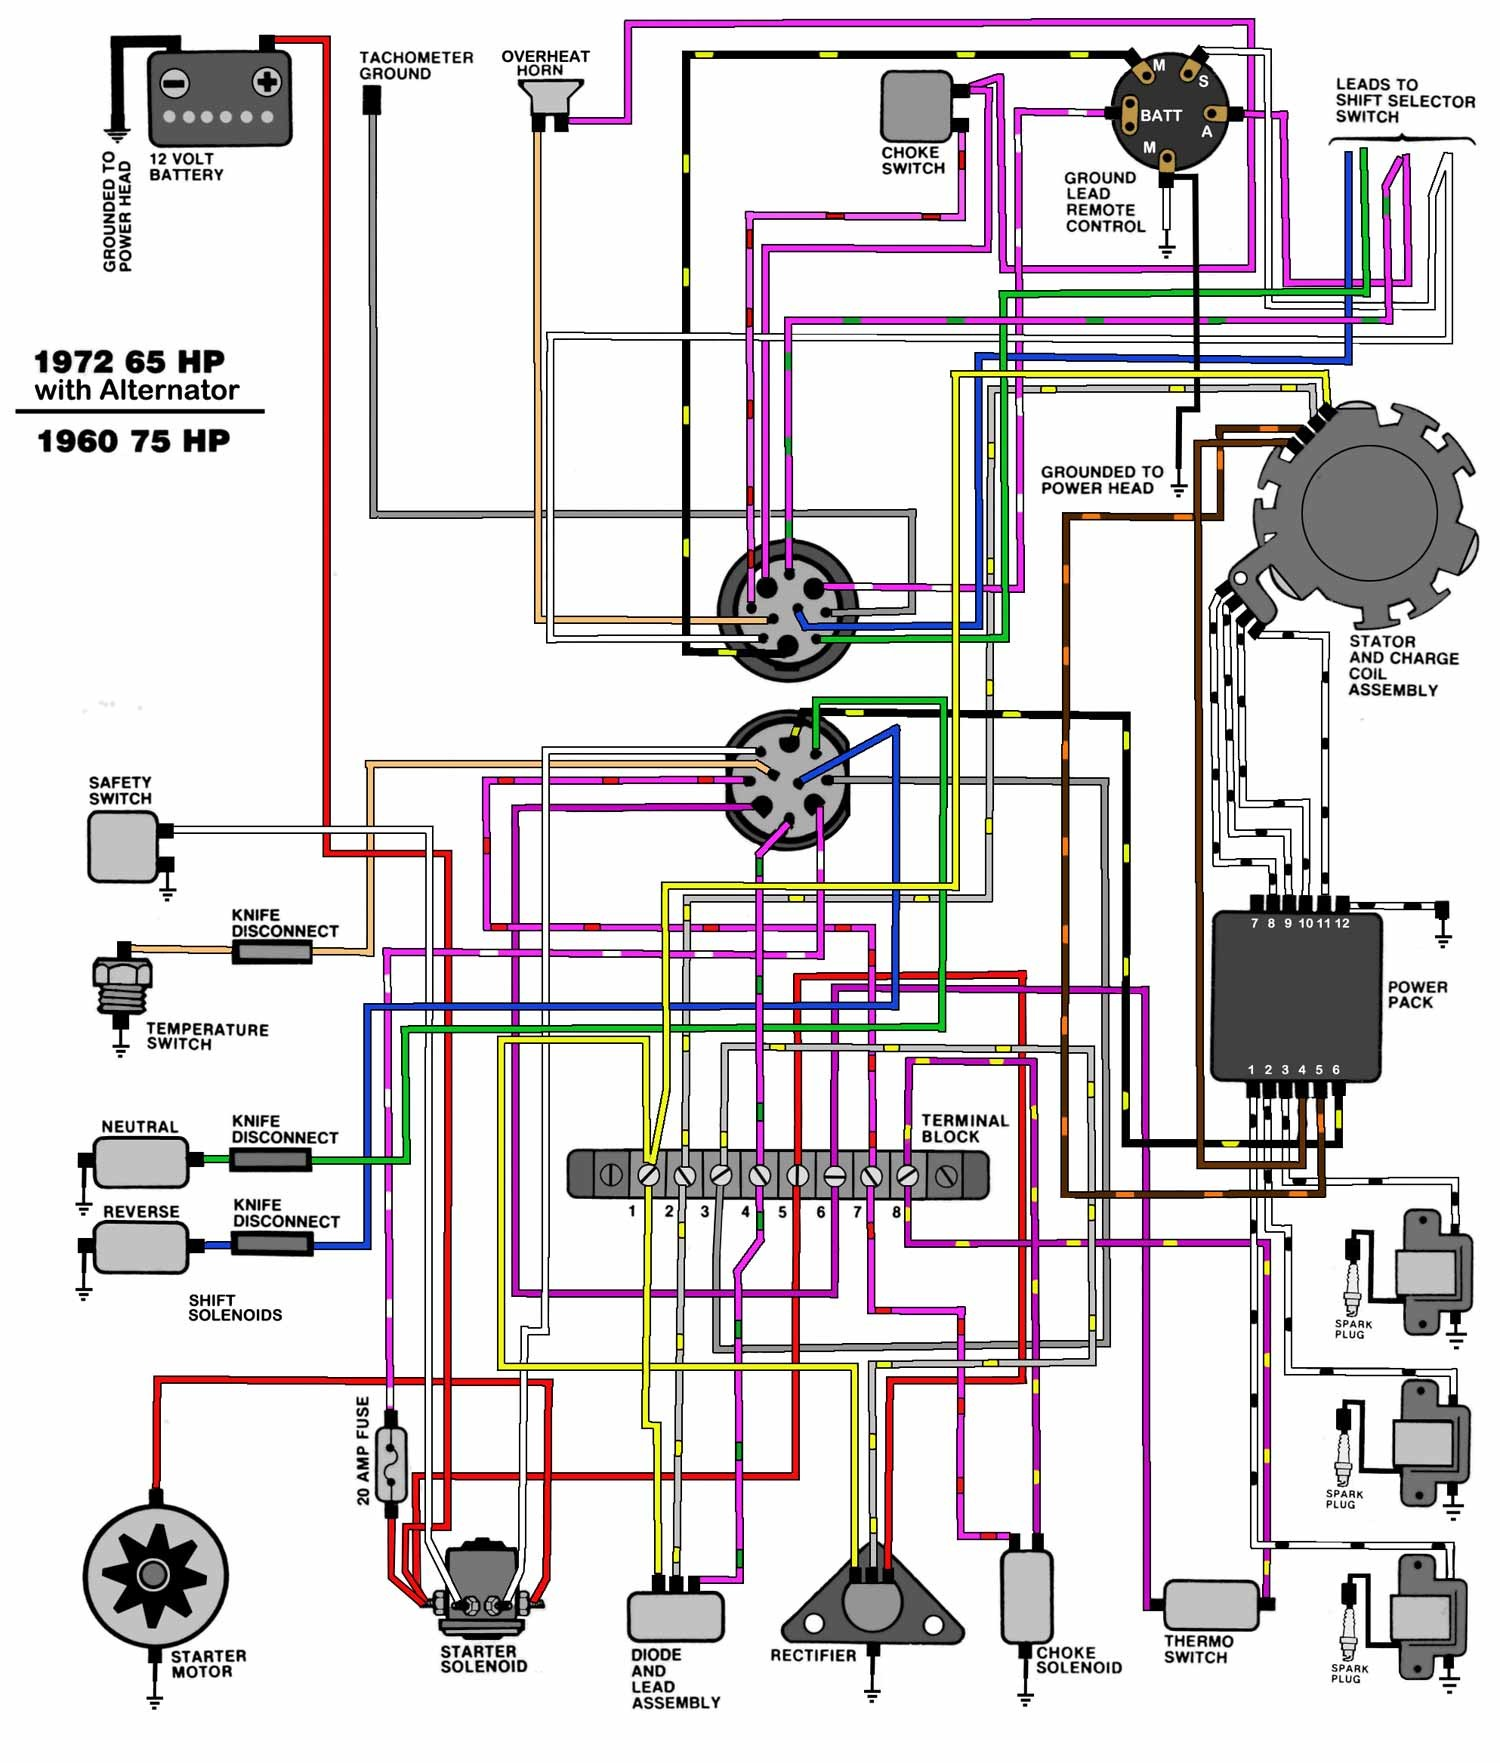 tohatsu outboard wiring harness diagram wiring diagram. Black Bedroom Furniture Sets. Home Design Ideas